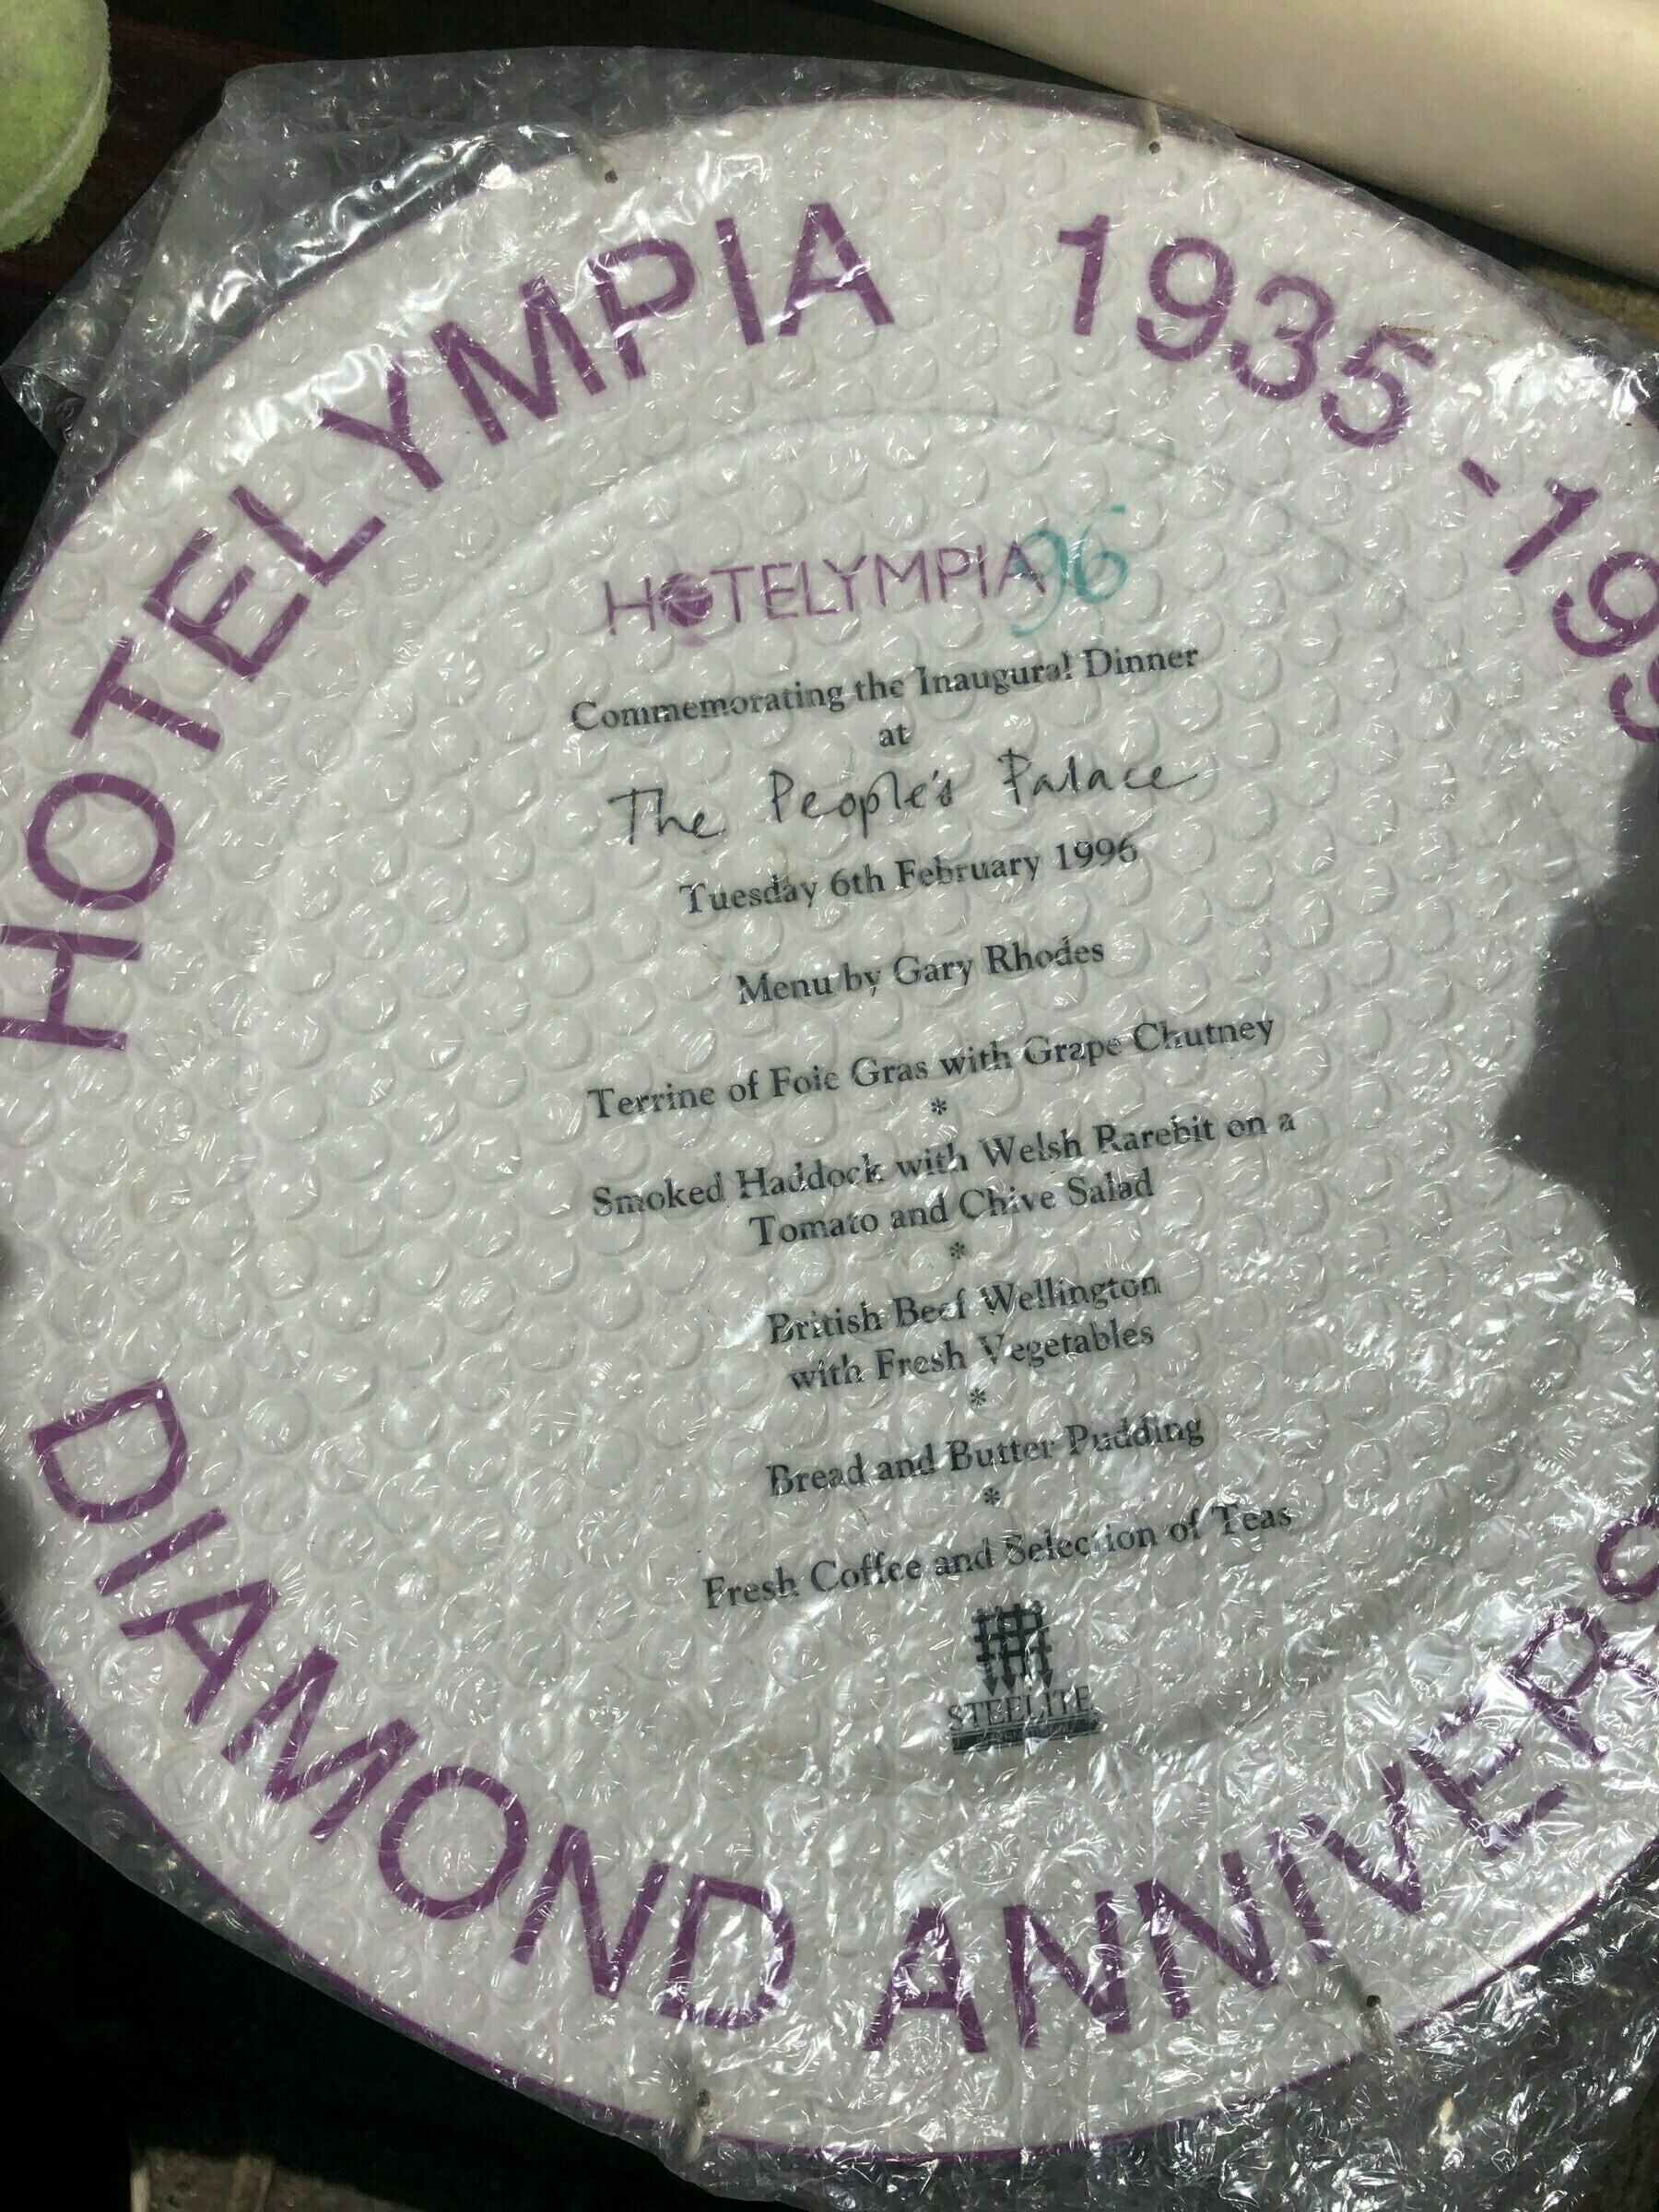 A Hotelympia commemorative playe from 1996, featuring a Gary Rhodes meal.